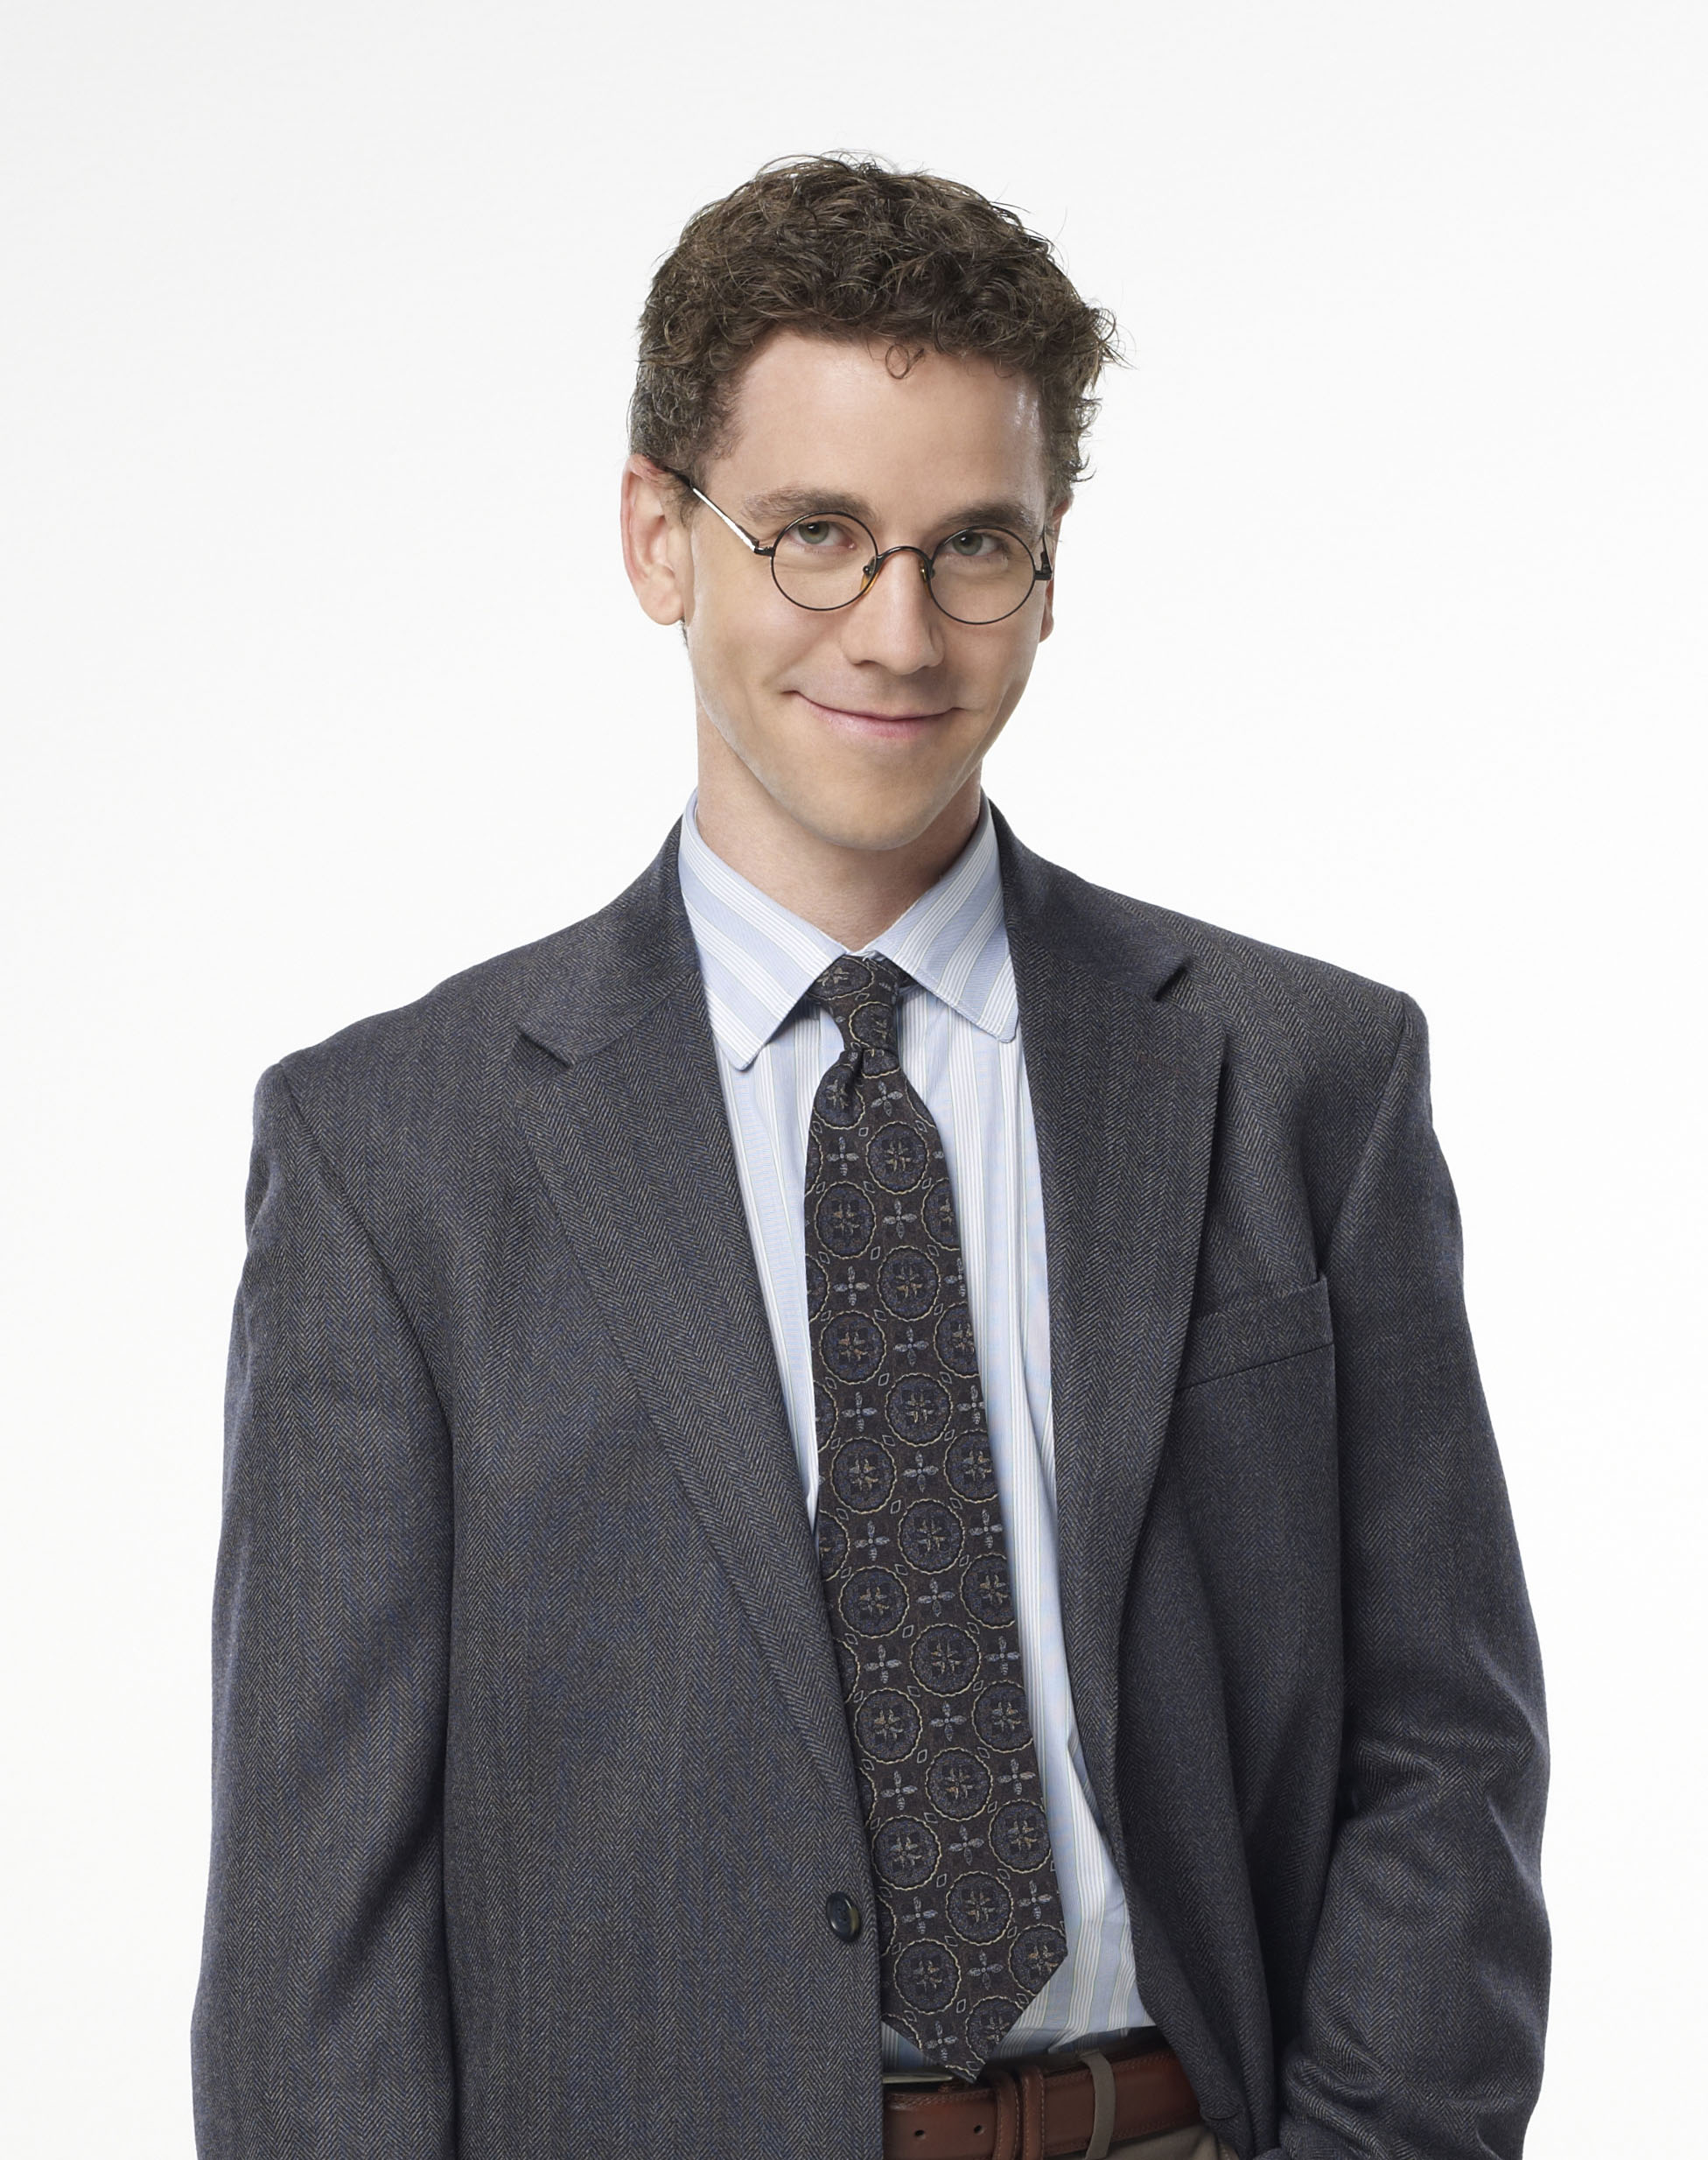 Brian Dietzen earned a  million dollar salary, leaving the net worth at 3 million in 2017